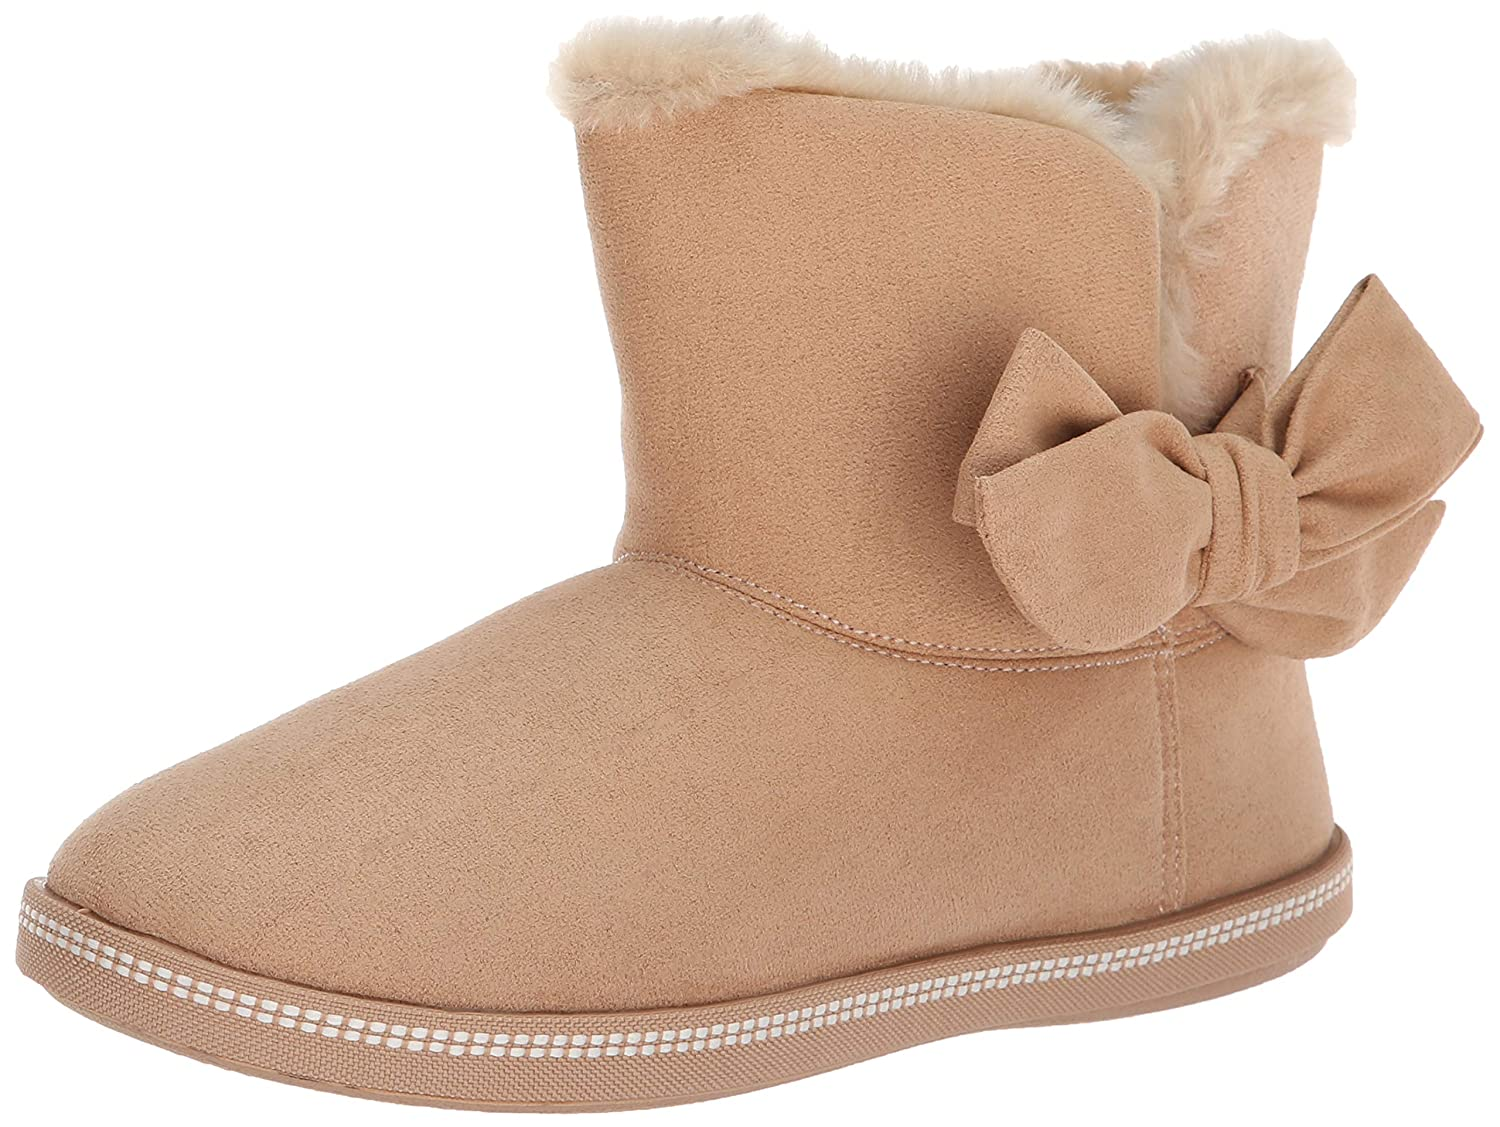 Skechers Women's Cozy Campfire Microfiber Slipper Boot with Bow